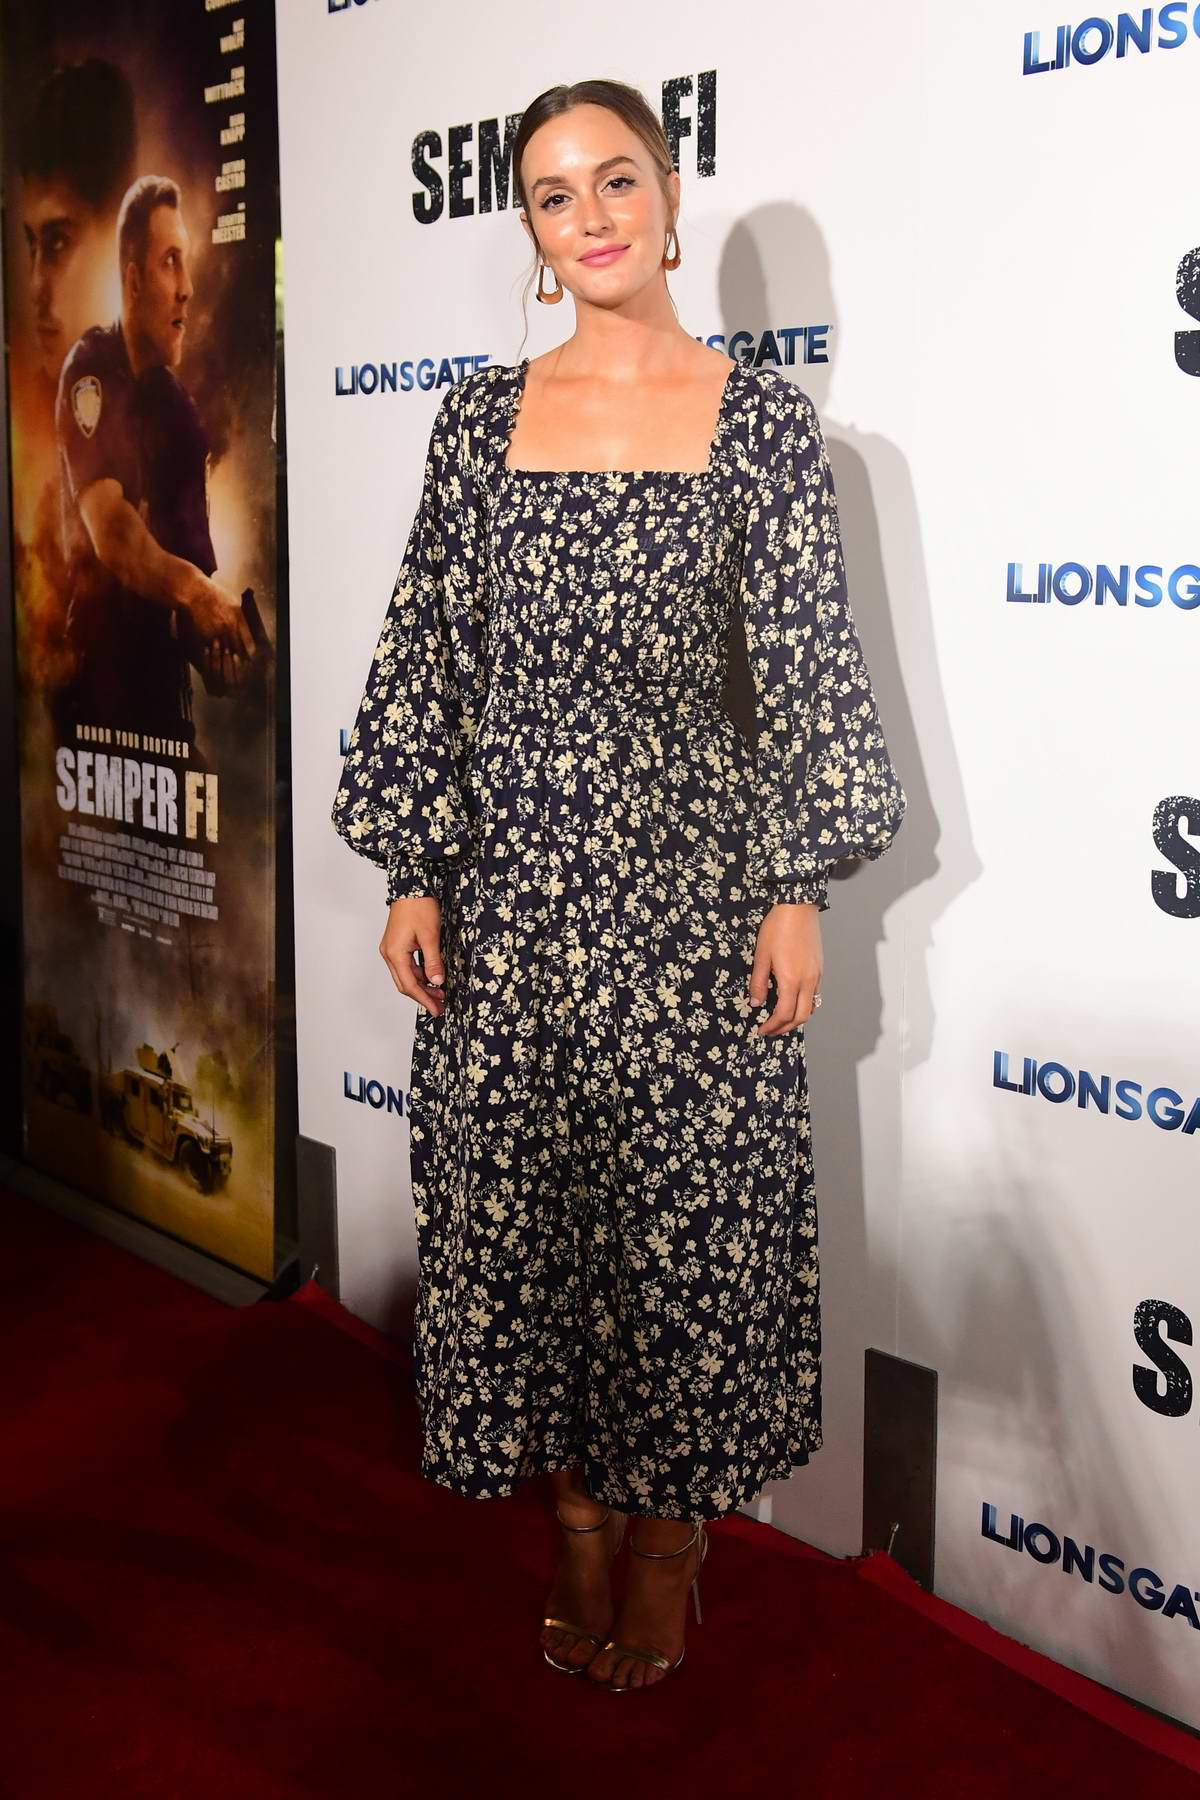 Leighton Meester attends a special screening of 'Semper Fi' in Hollywood, California